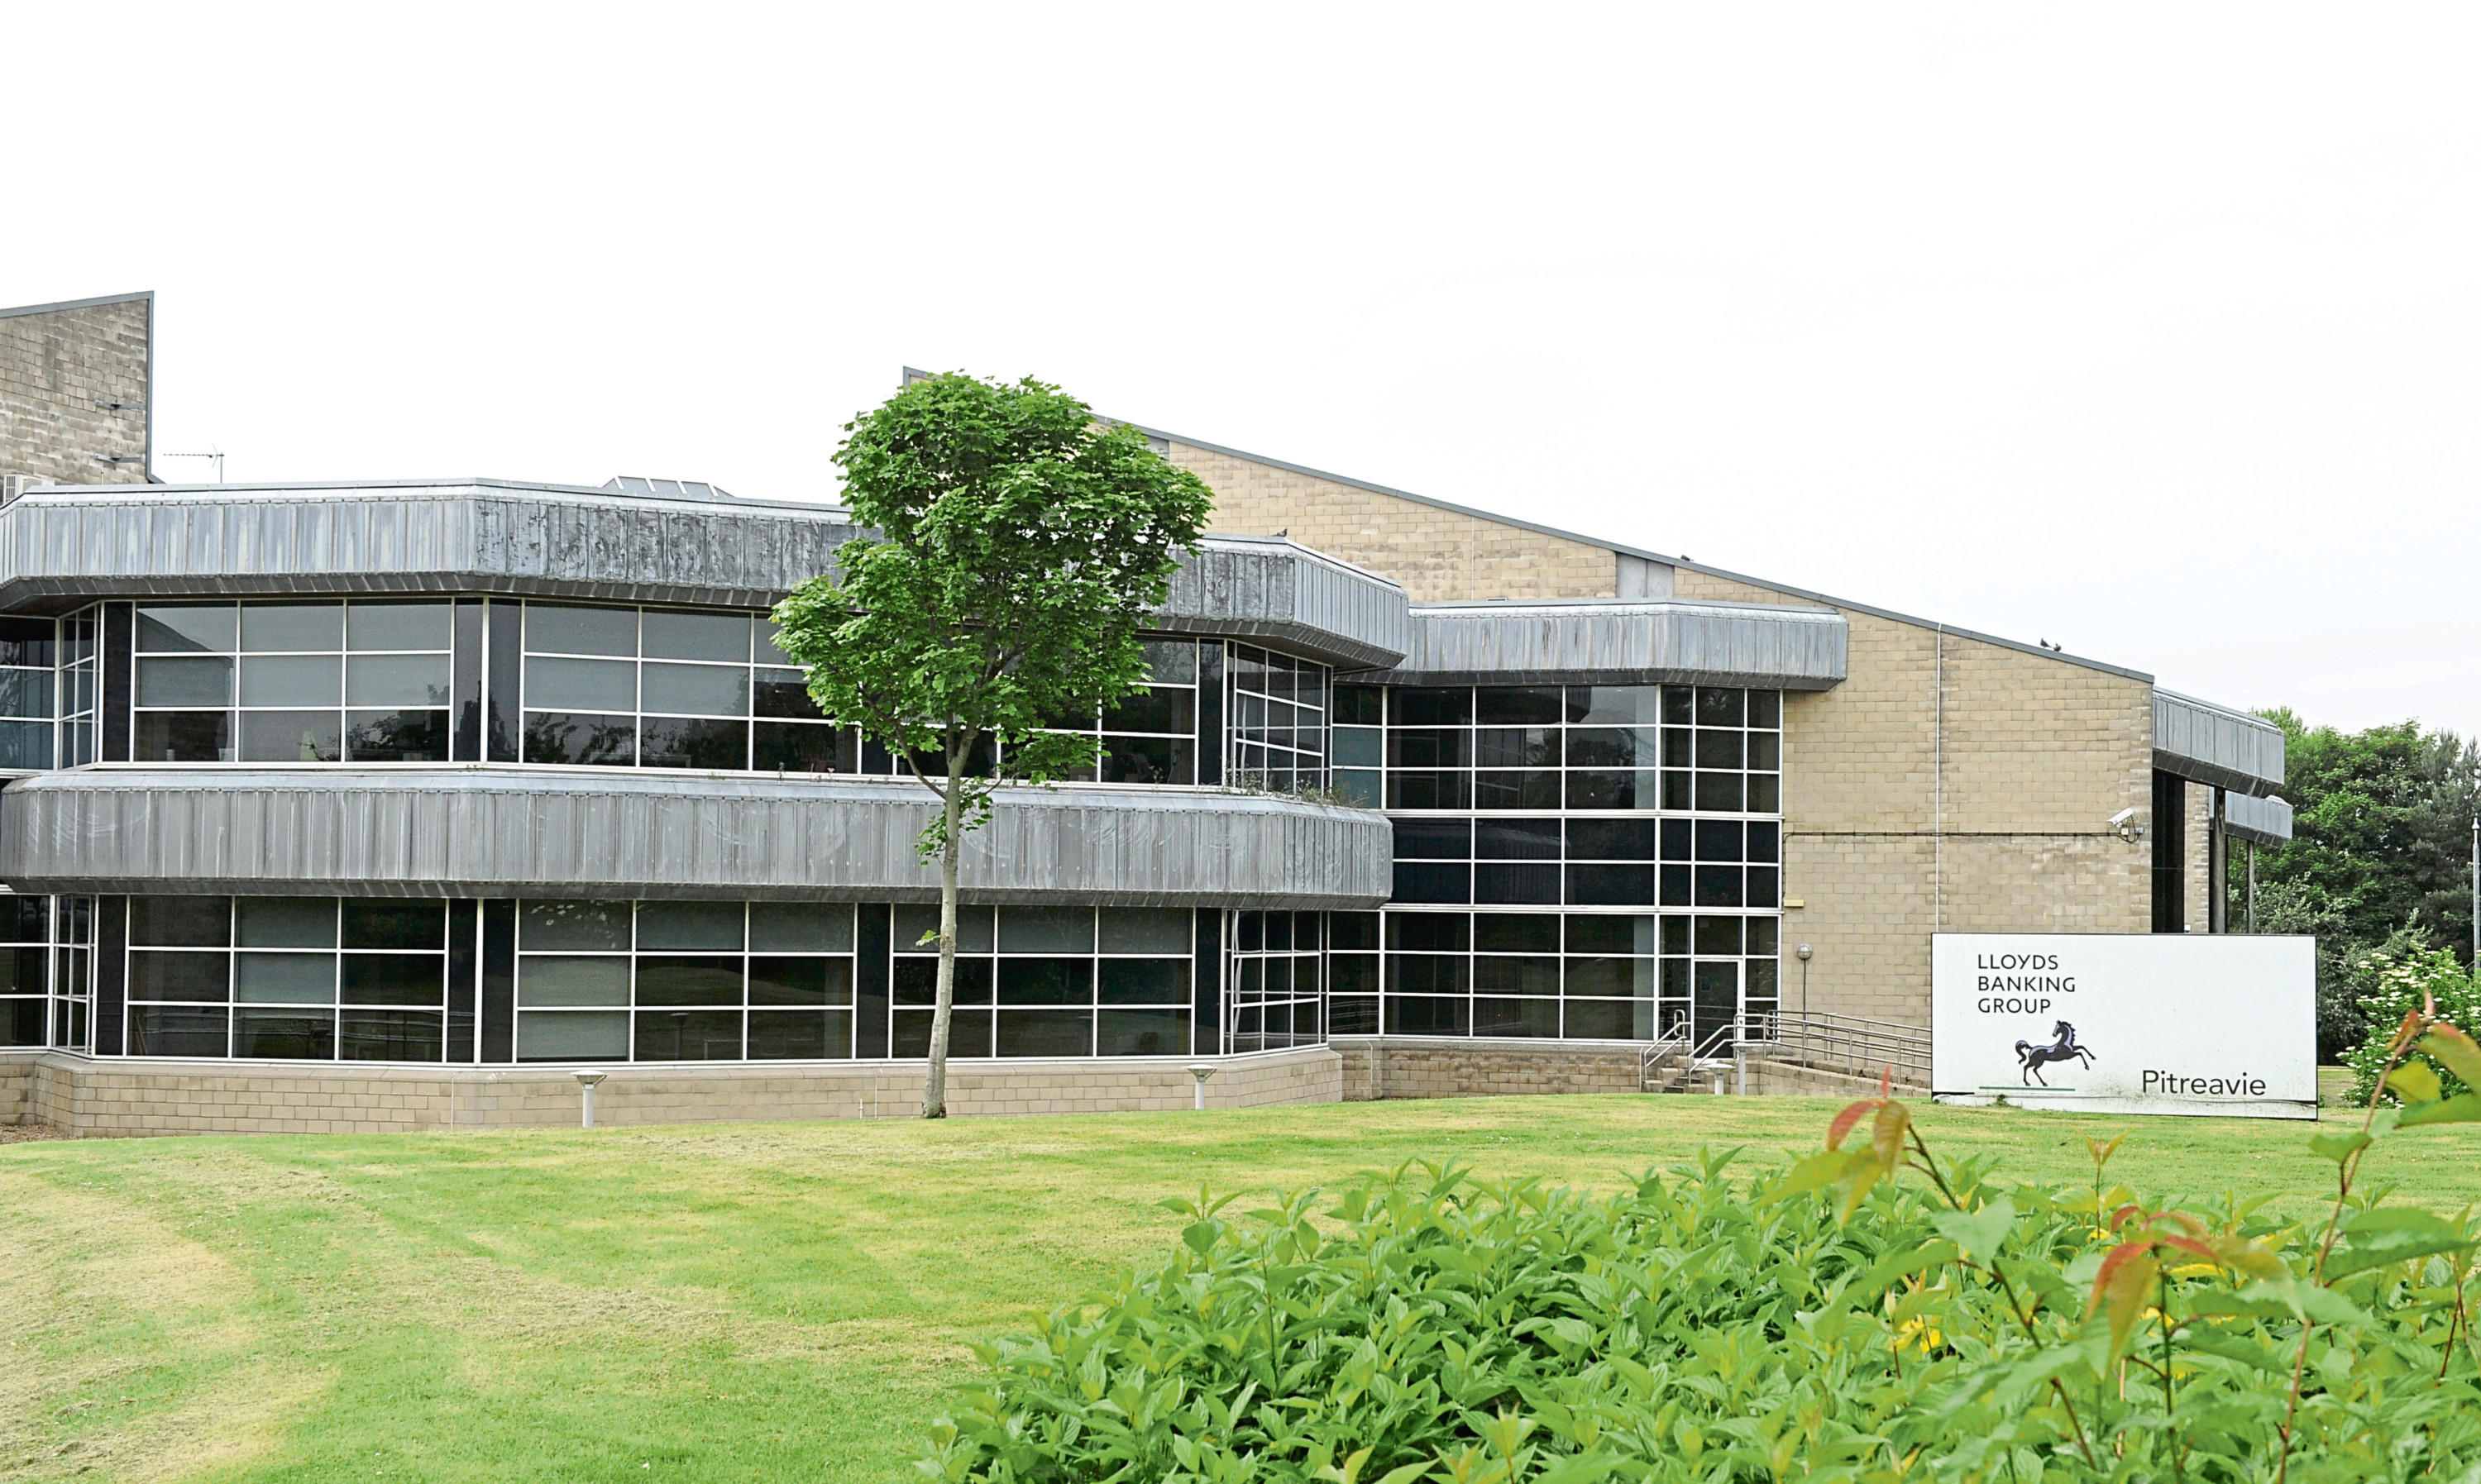 A number of banking groups have operations in Fife, including Lloyds which has a base at Pitreavie by Dunfermline.